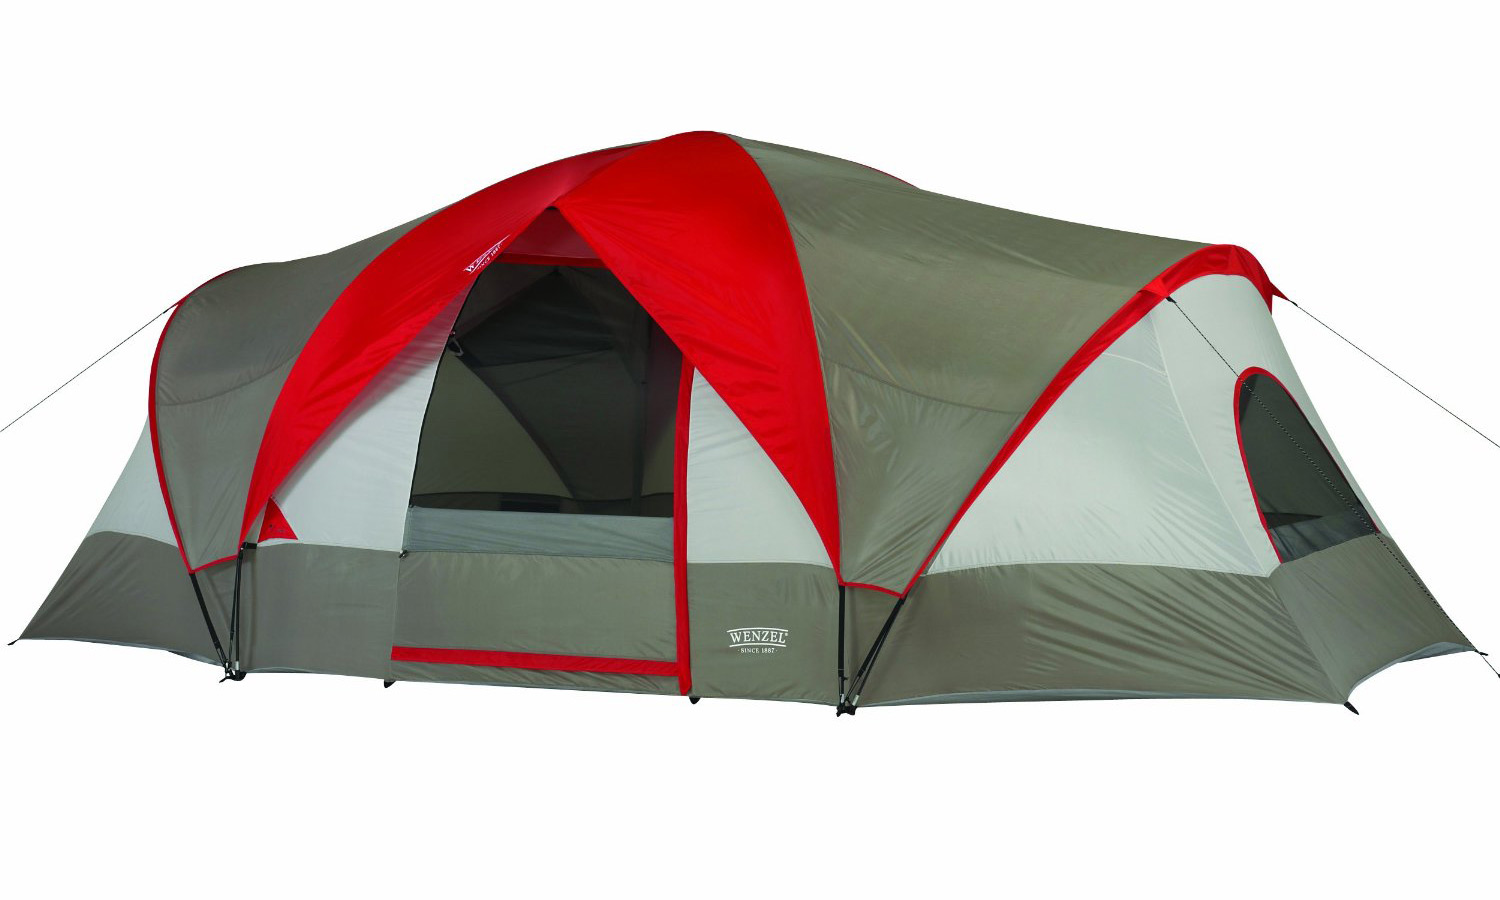 5 Of The Best 10 Person Tent Reviews For 2018